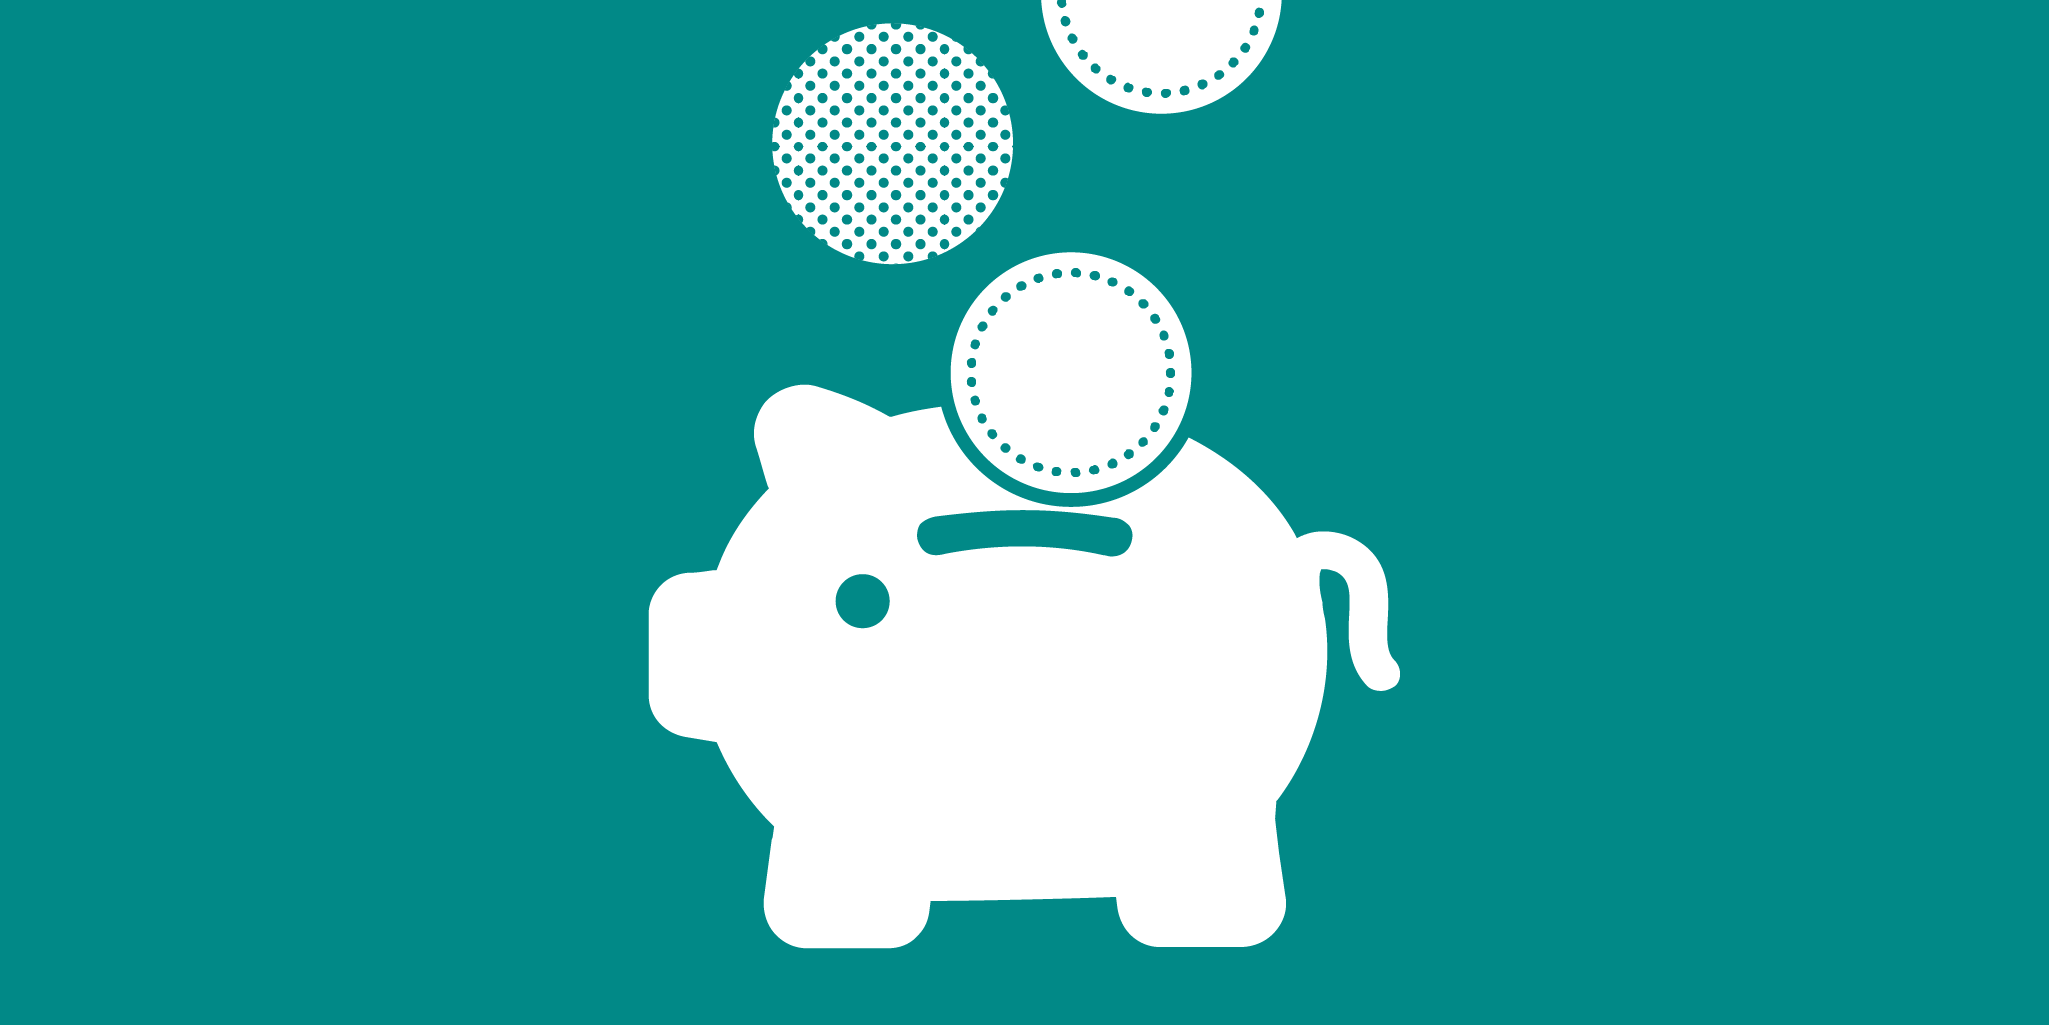 a white piggy bank with coins going into it on a green background